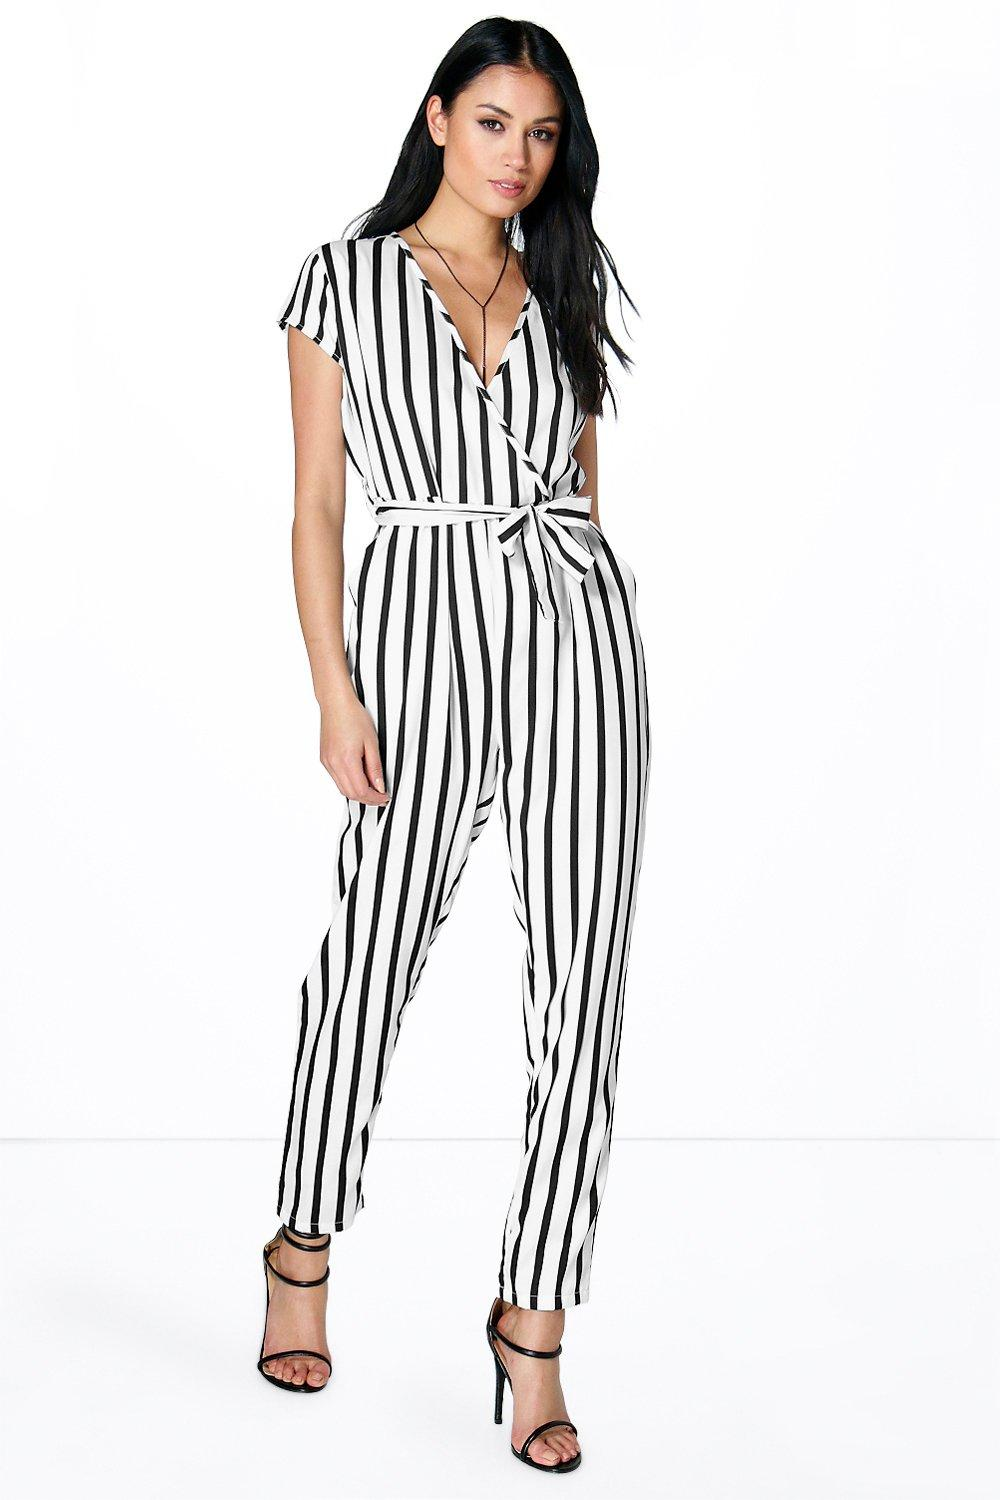 Jenna Capped Sleeve Striped Jumpsuit